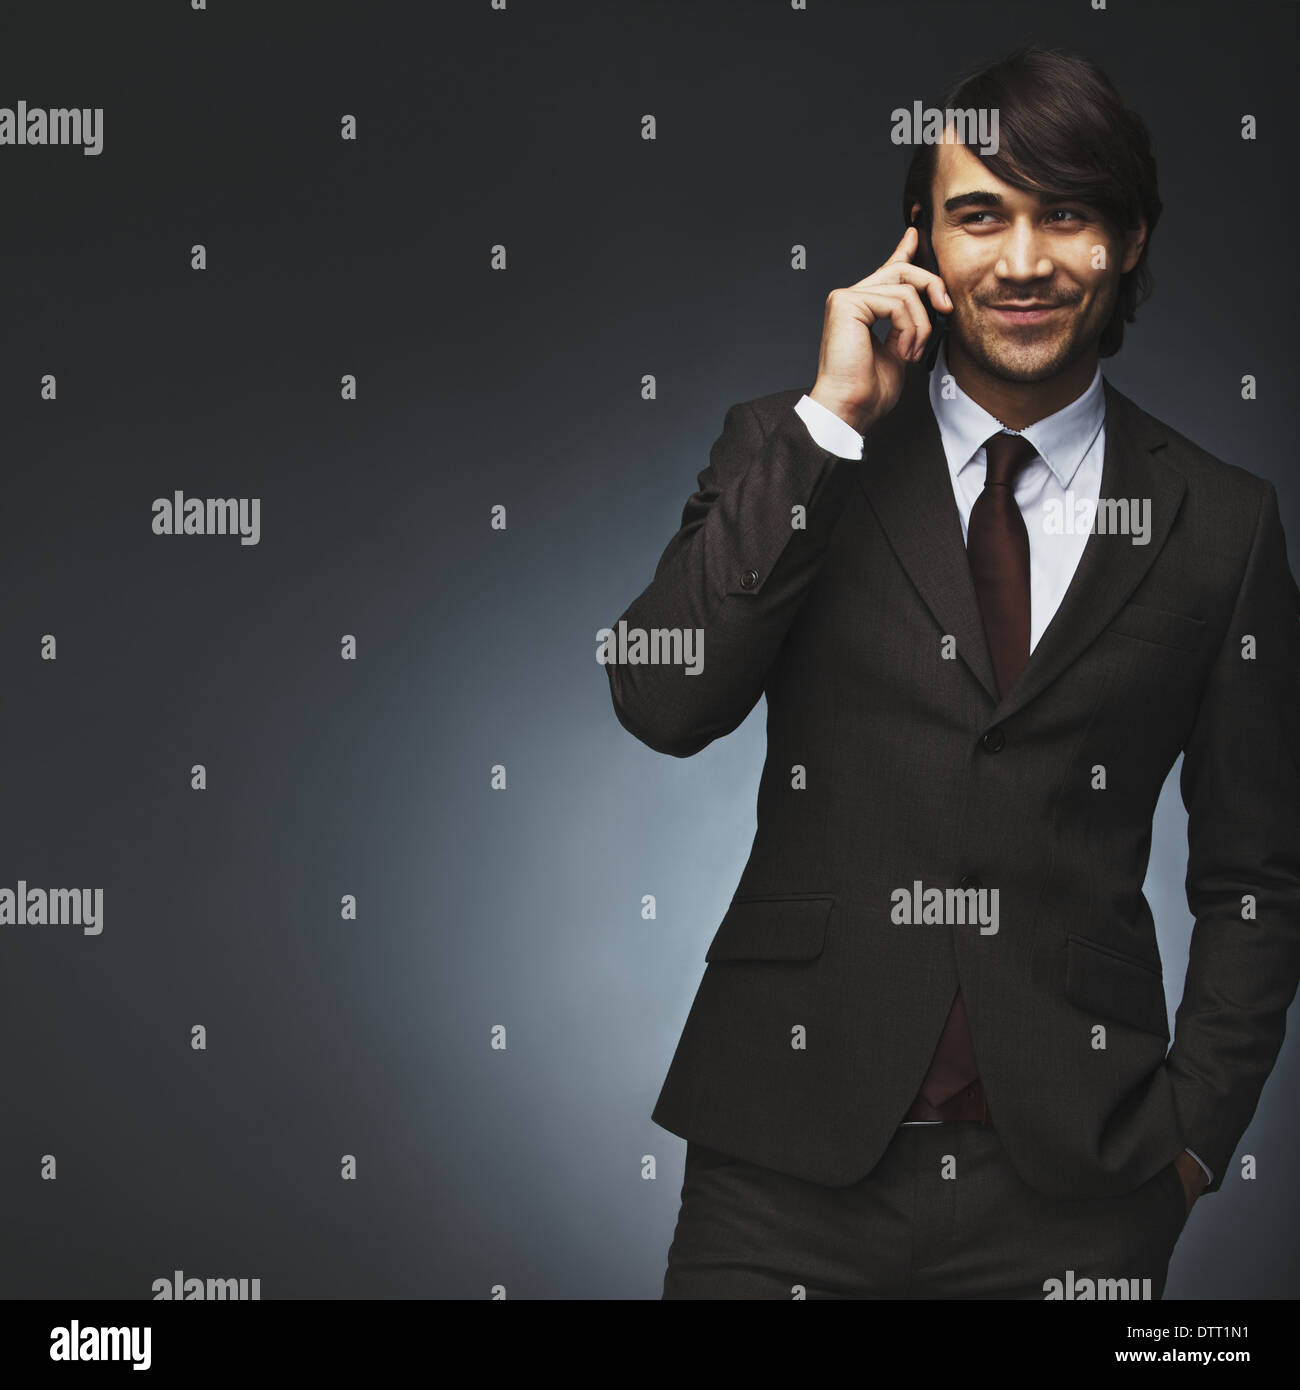 Asian man talking on mobile phone. Handsome young mixed race man on black background. Professional young businessman calling. - Stock Image